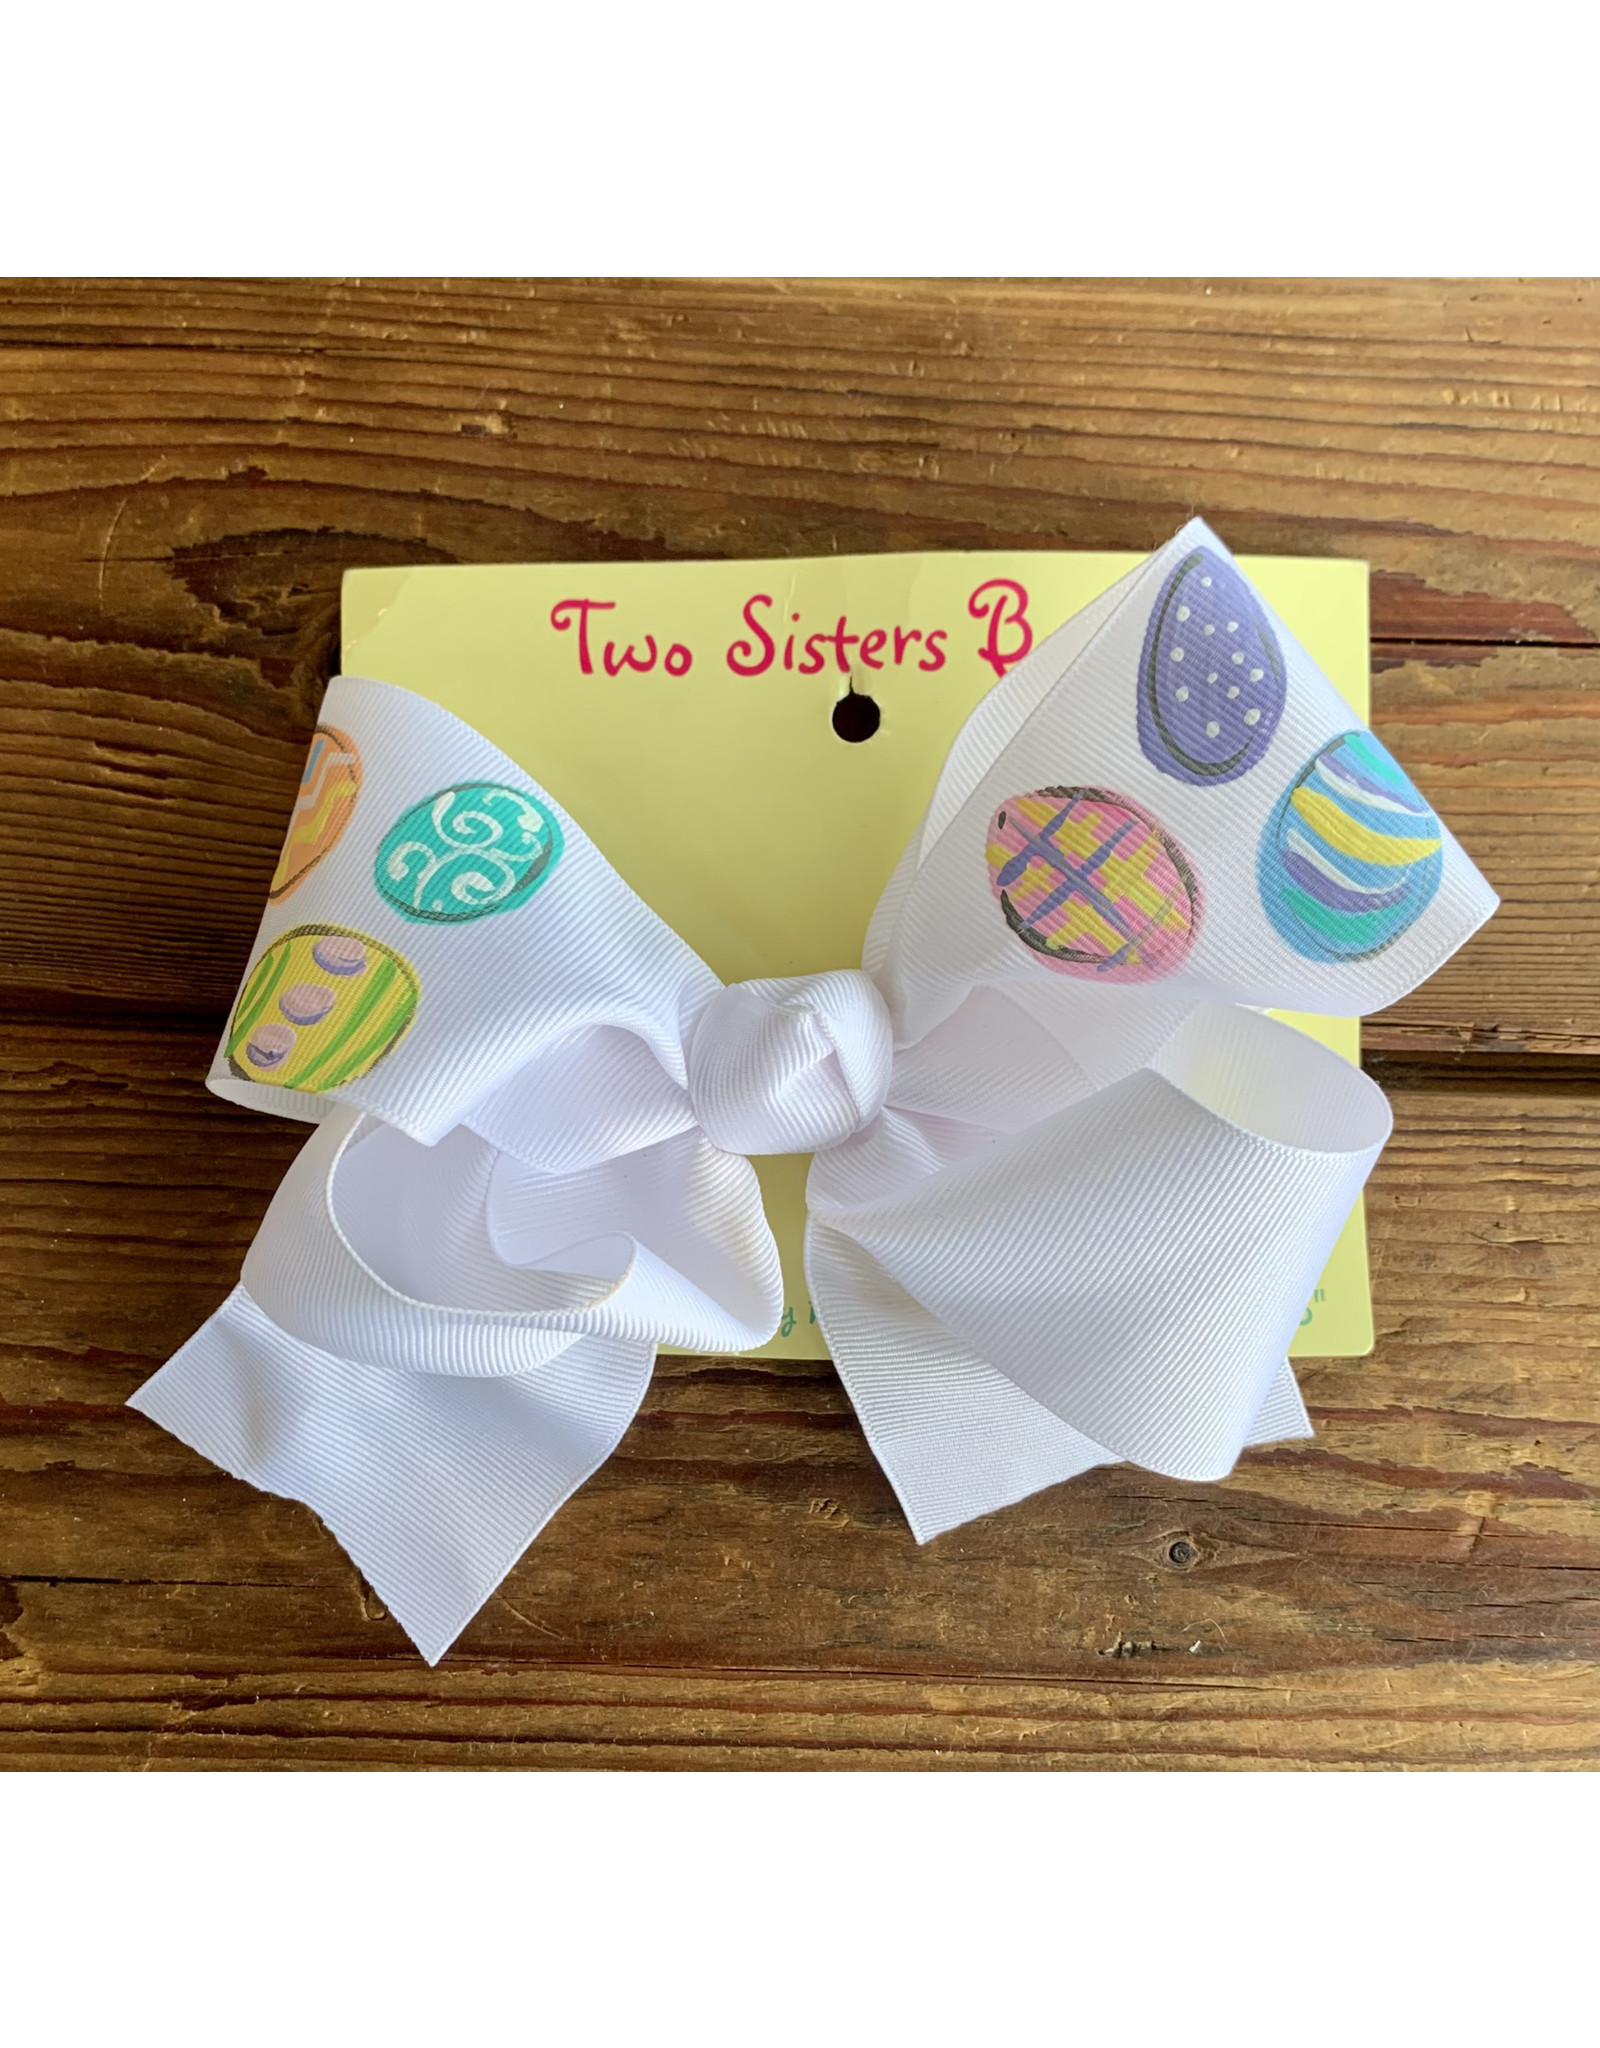 Two Sisters- Pastel Eggs Handpainted Large Bow